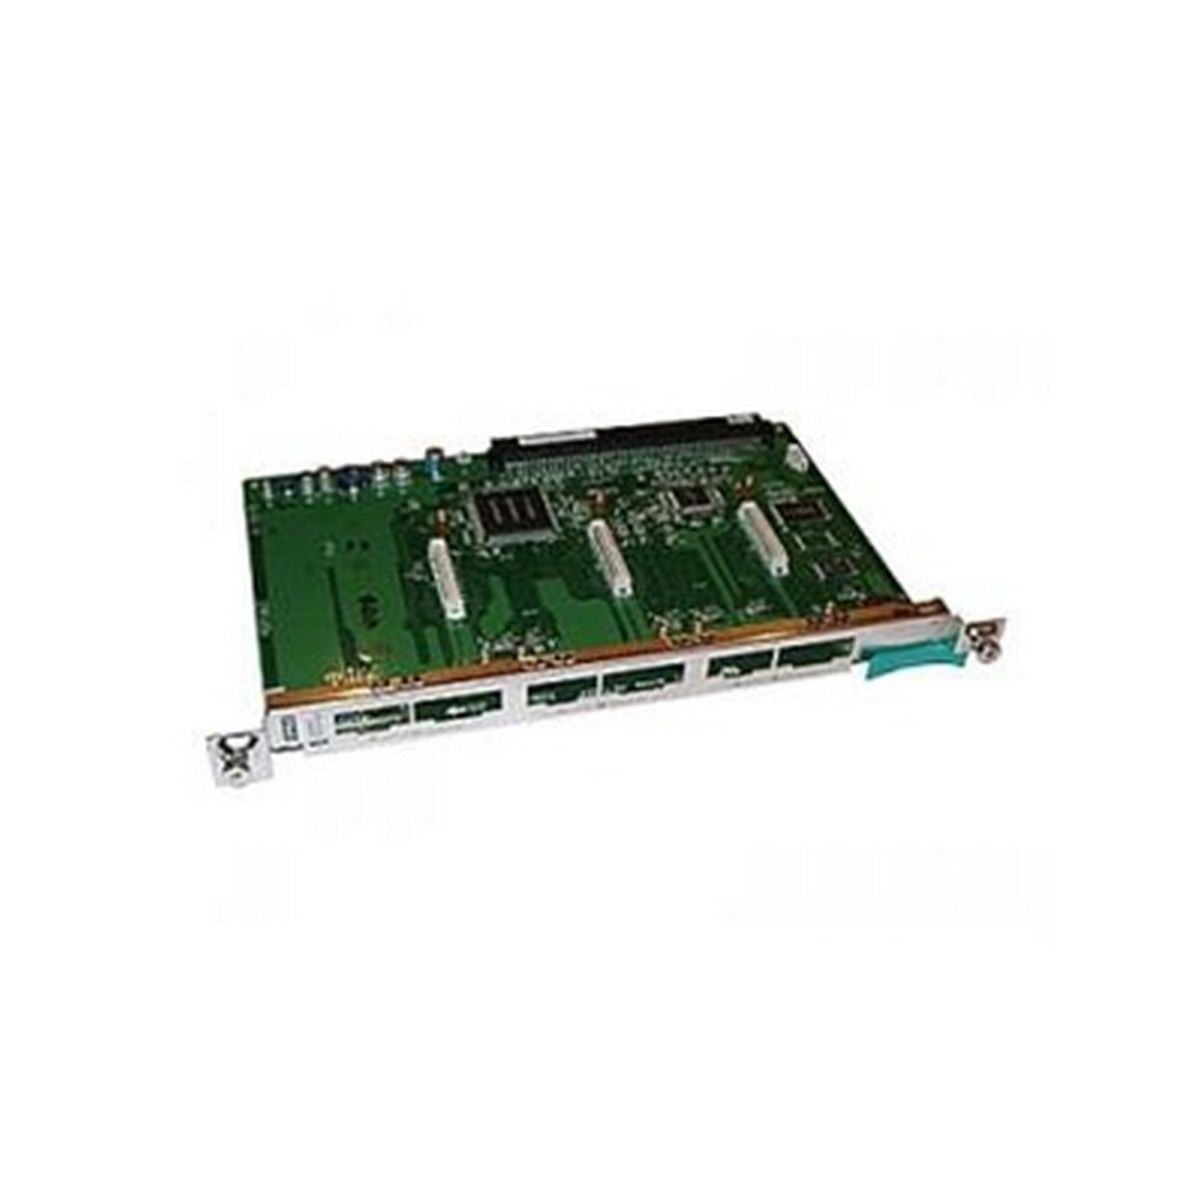 Panasonic KX-TDA0190 Hybrid IP OPtional 3 Slot Base Card